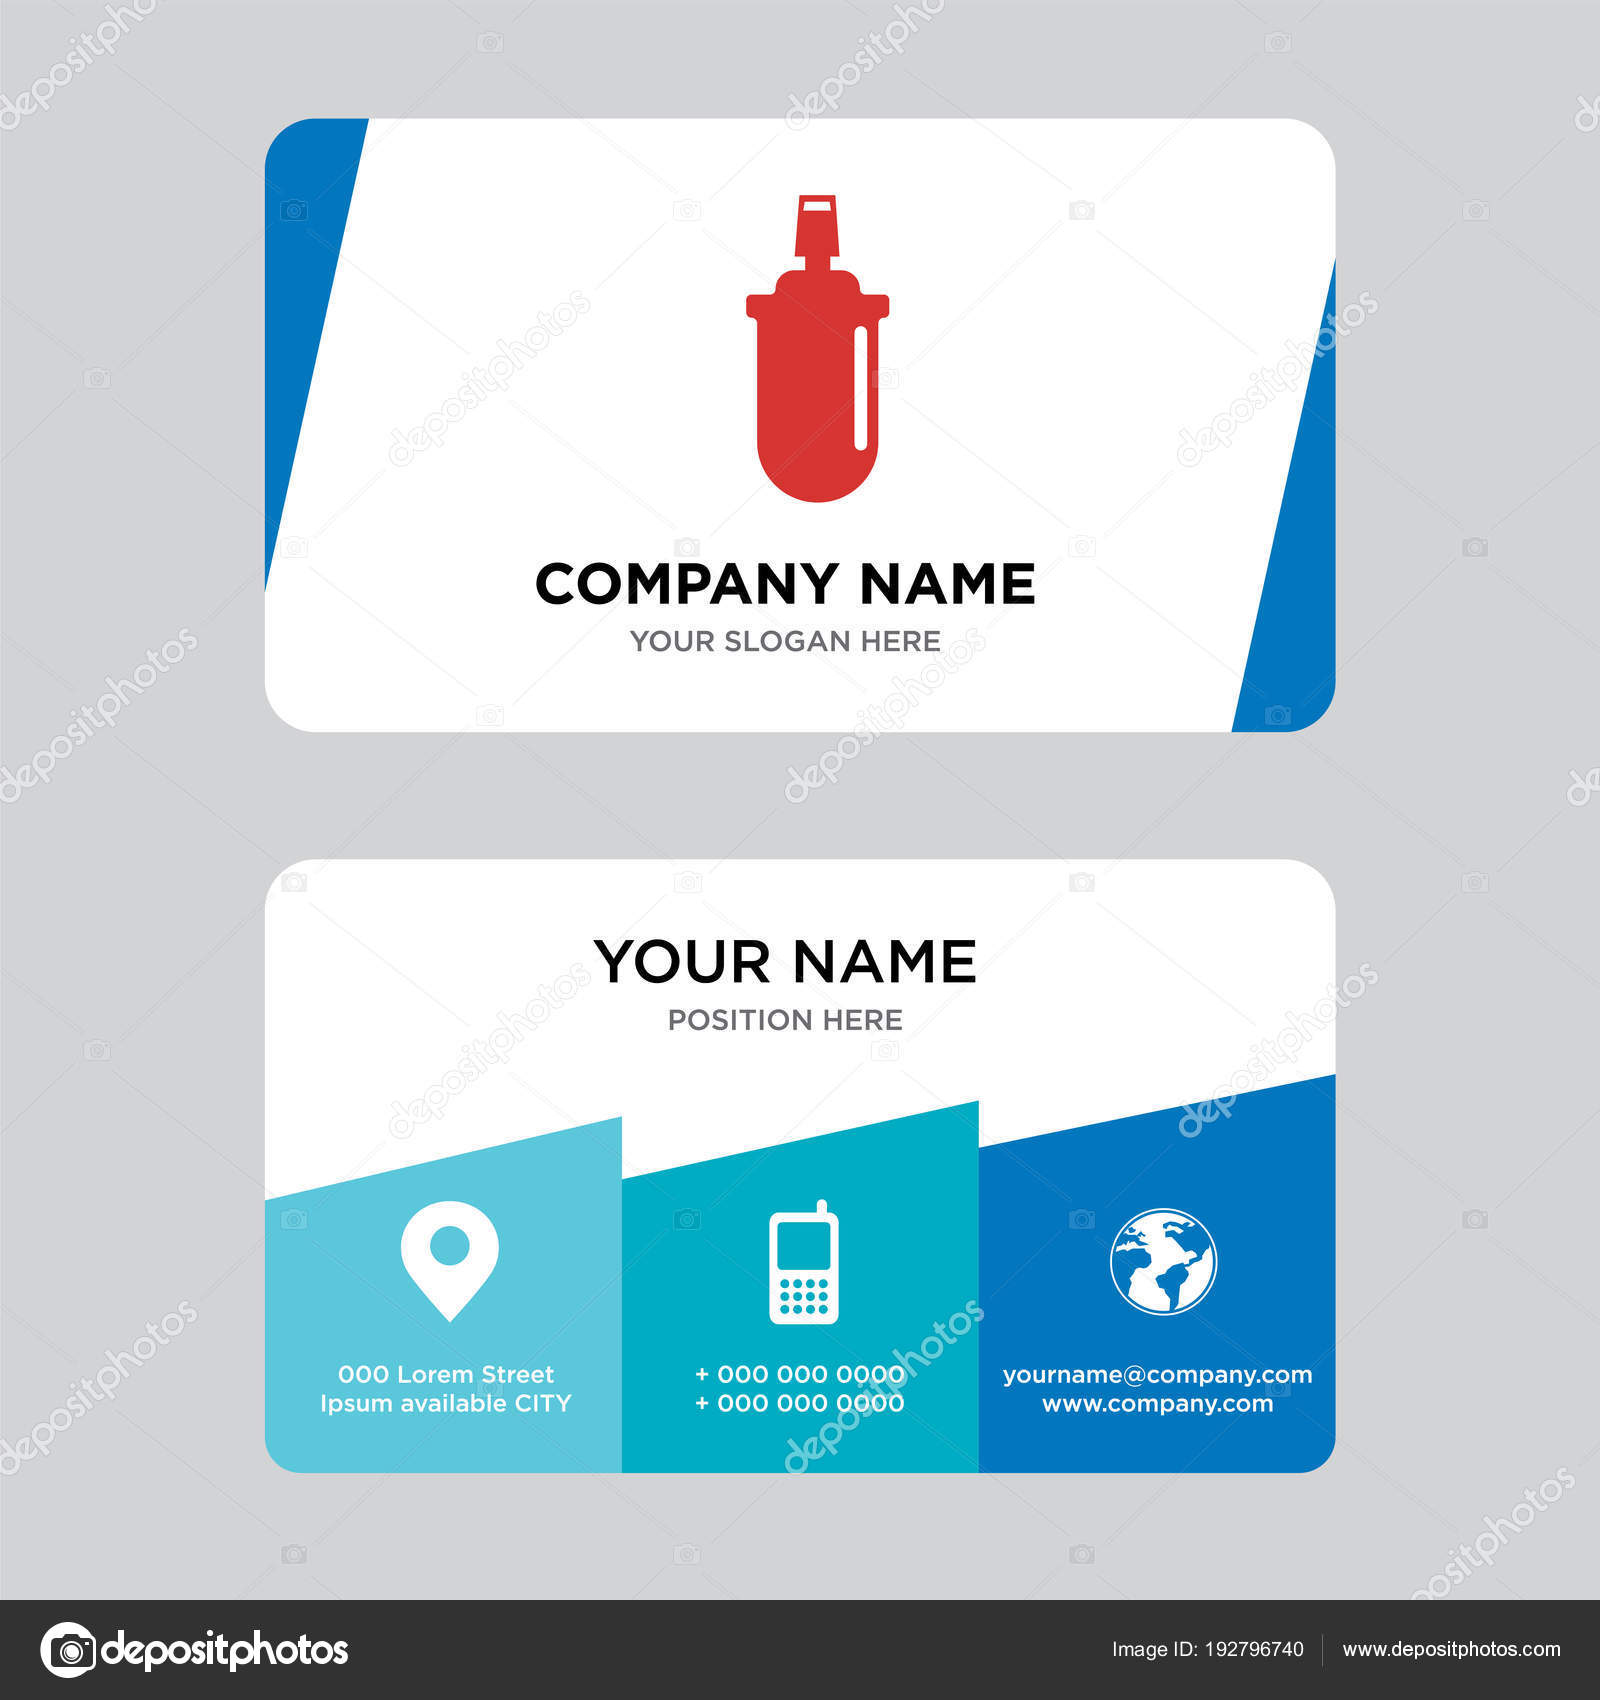 gas can business card design template — Stock Vector ...